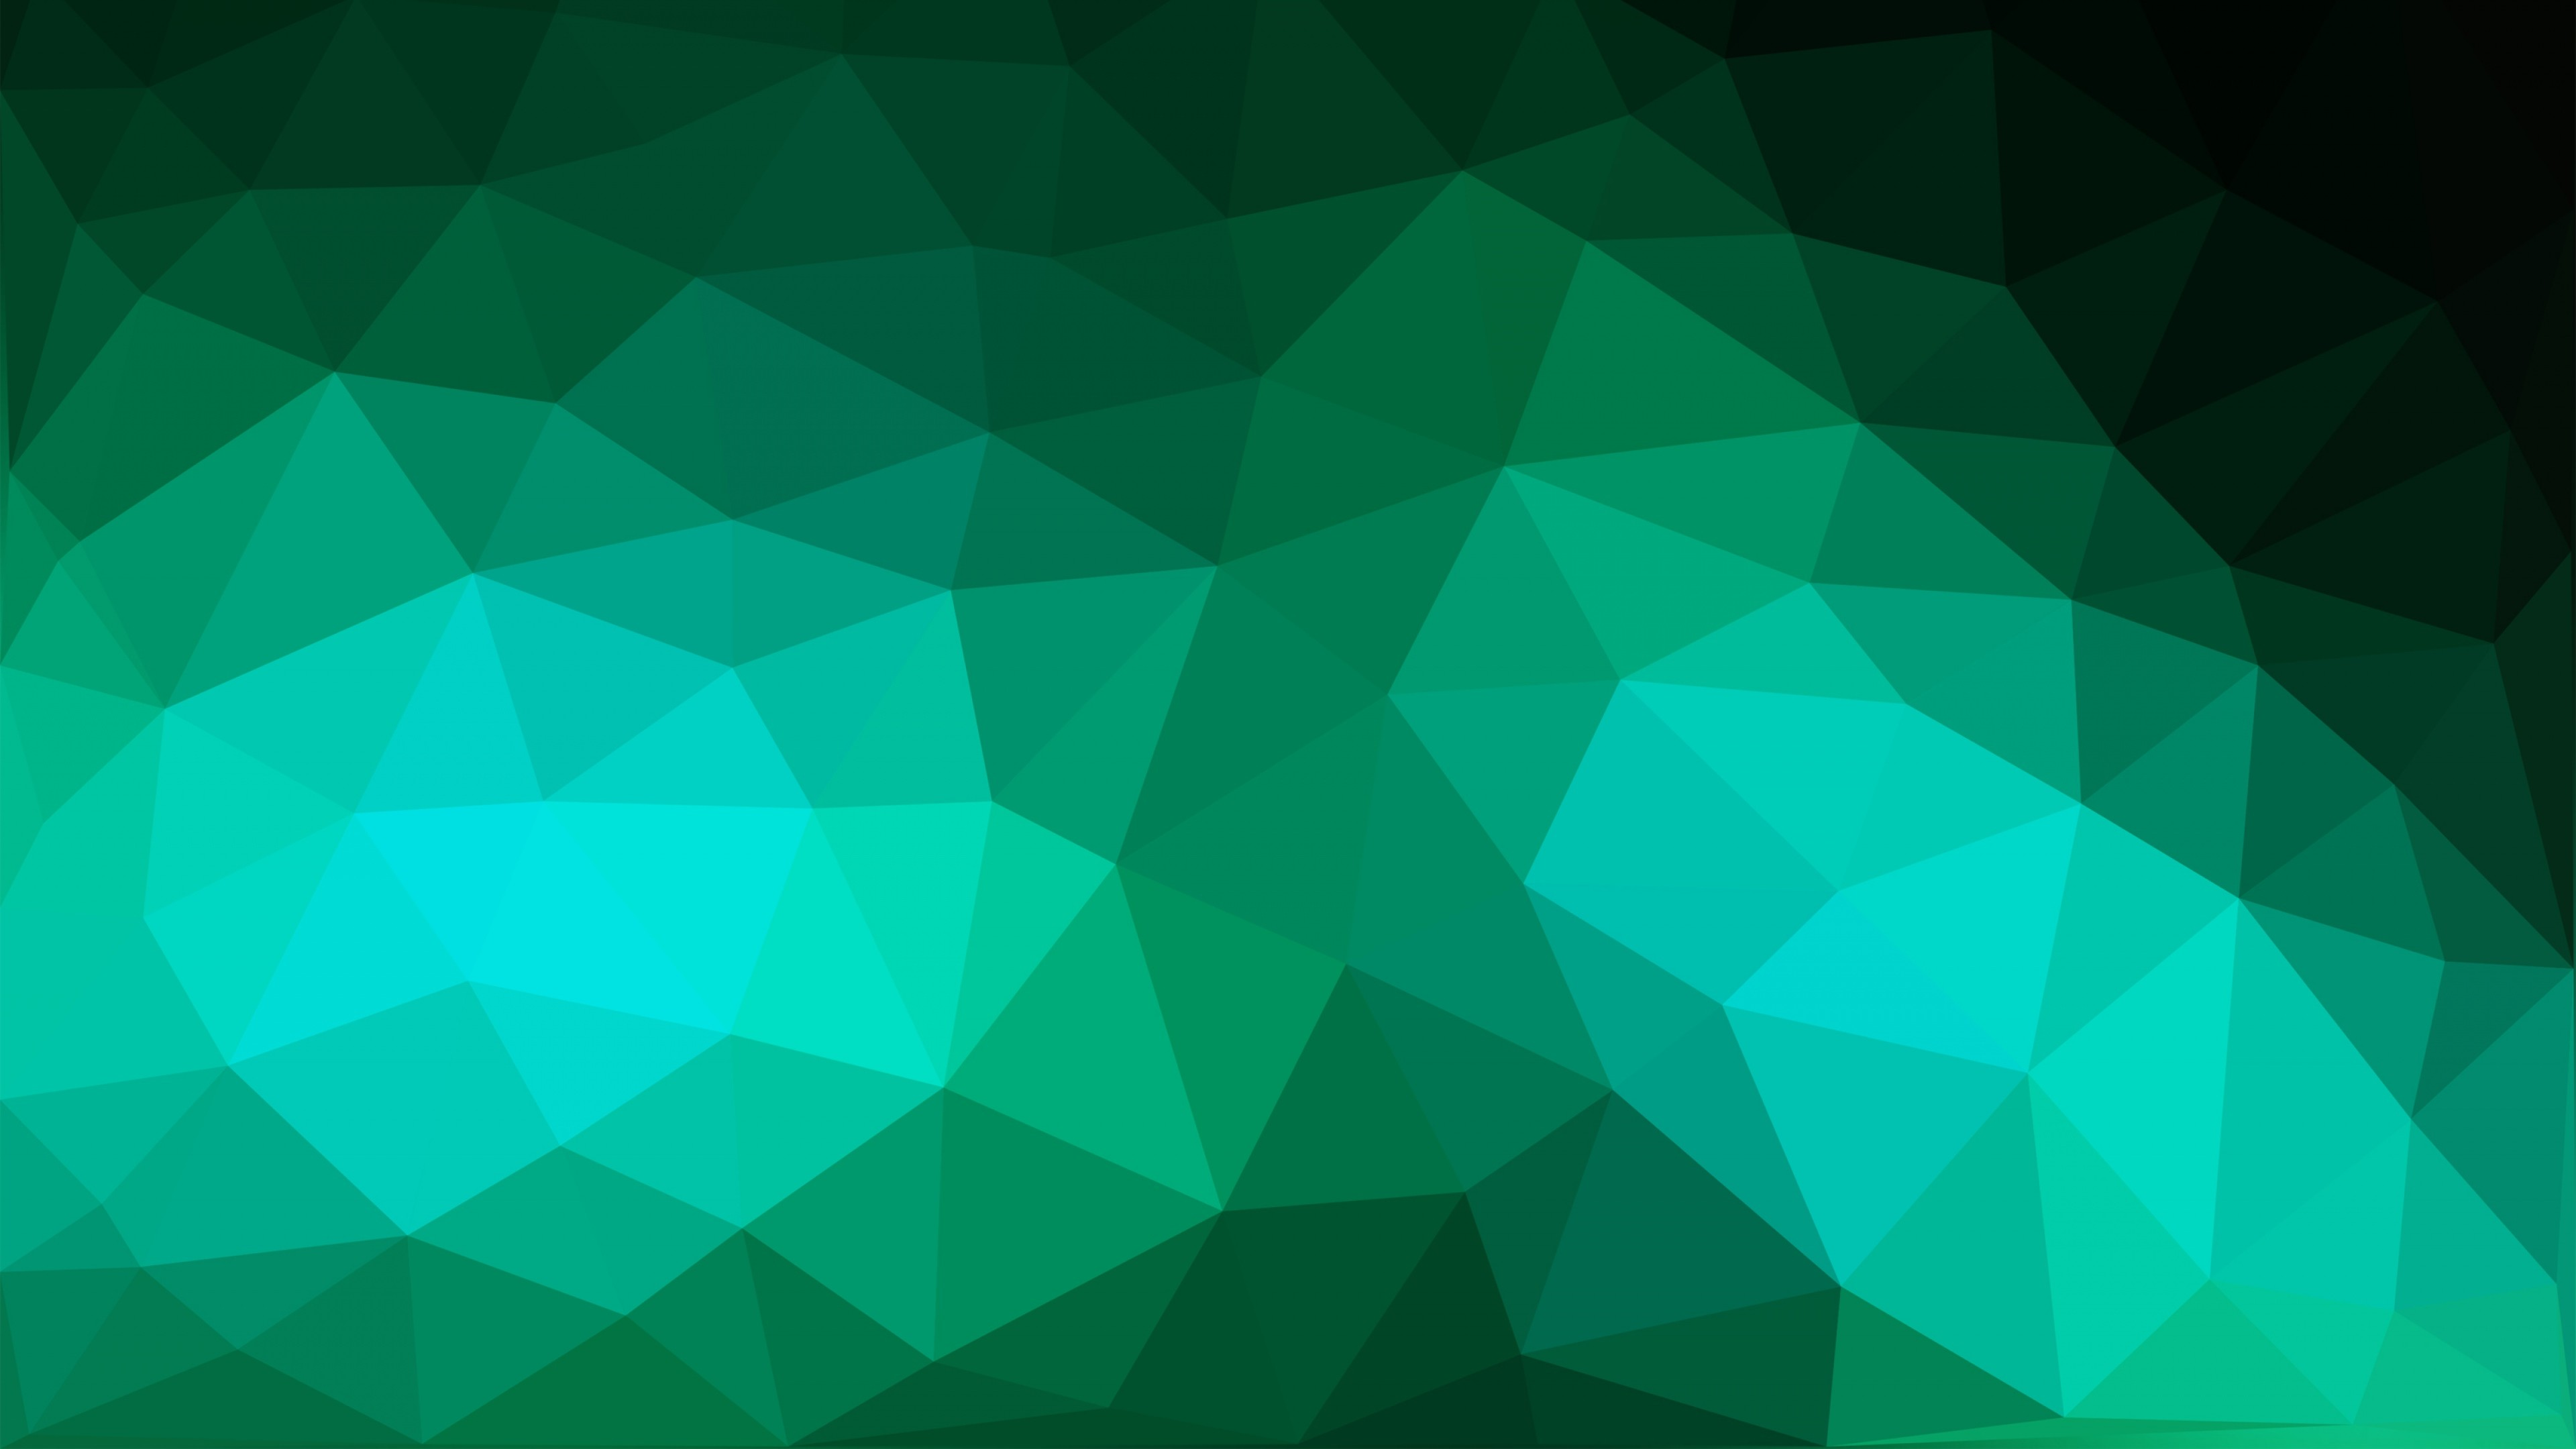 3840x2160 Polygon Texture 1280x1024 Resolution